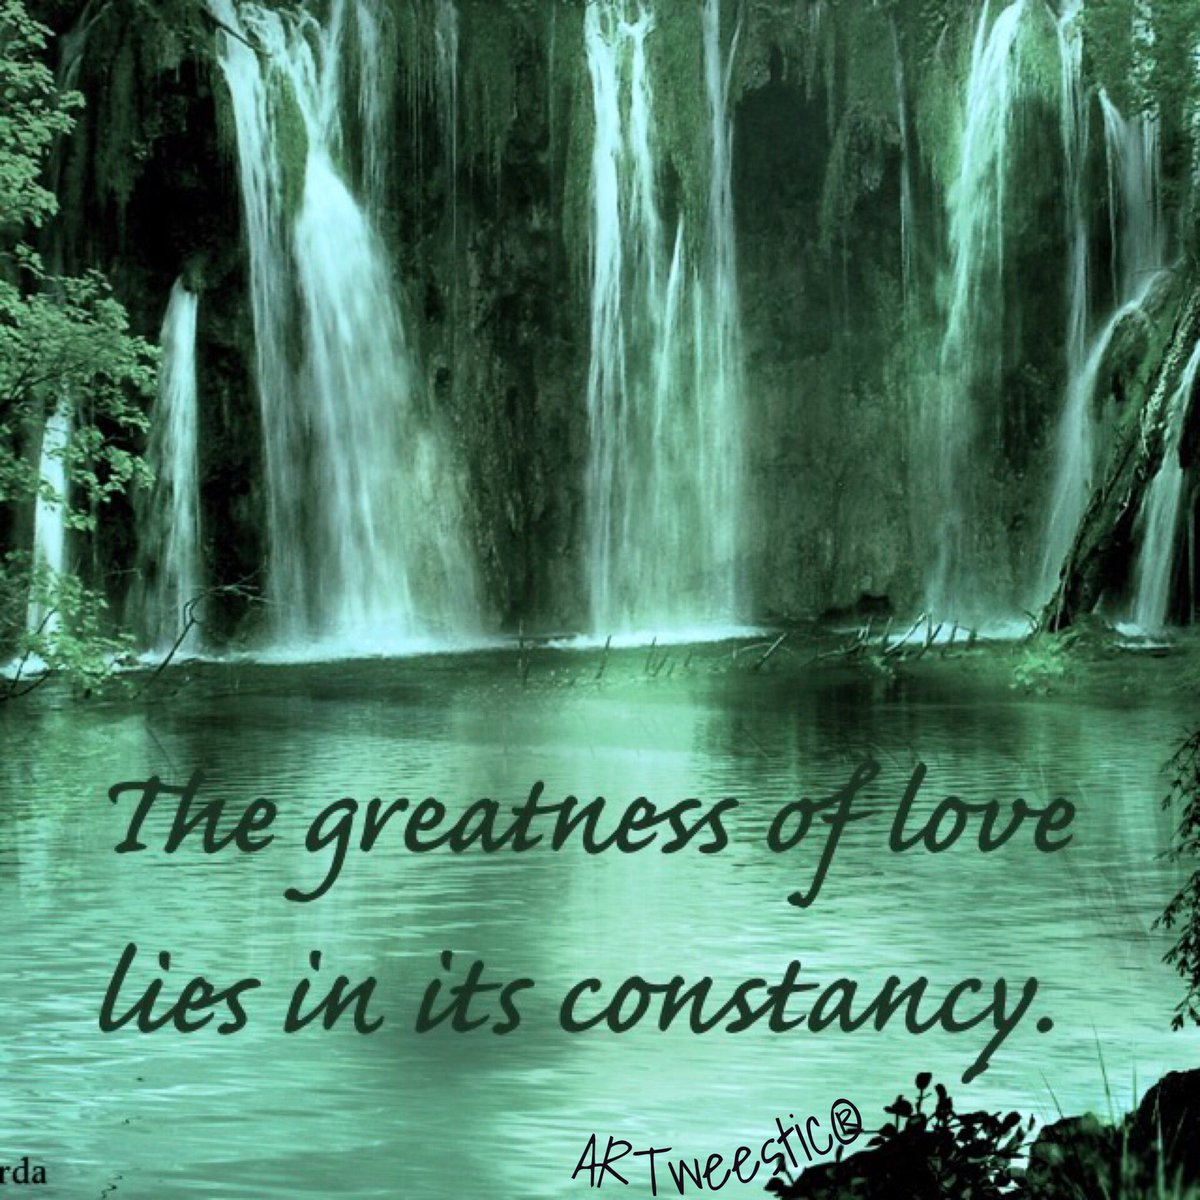 ❤️The greatness of #love lies in its constancy ❤️ https://t.co/aALCyZBUKh